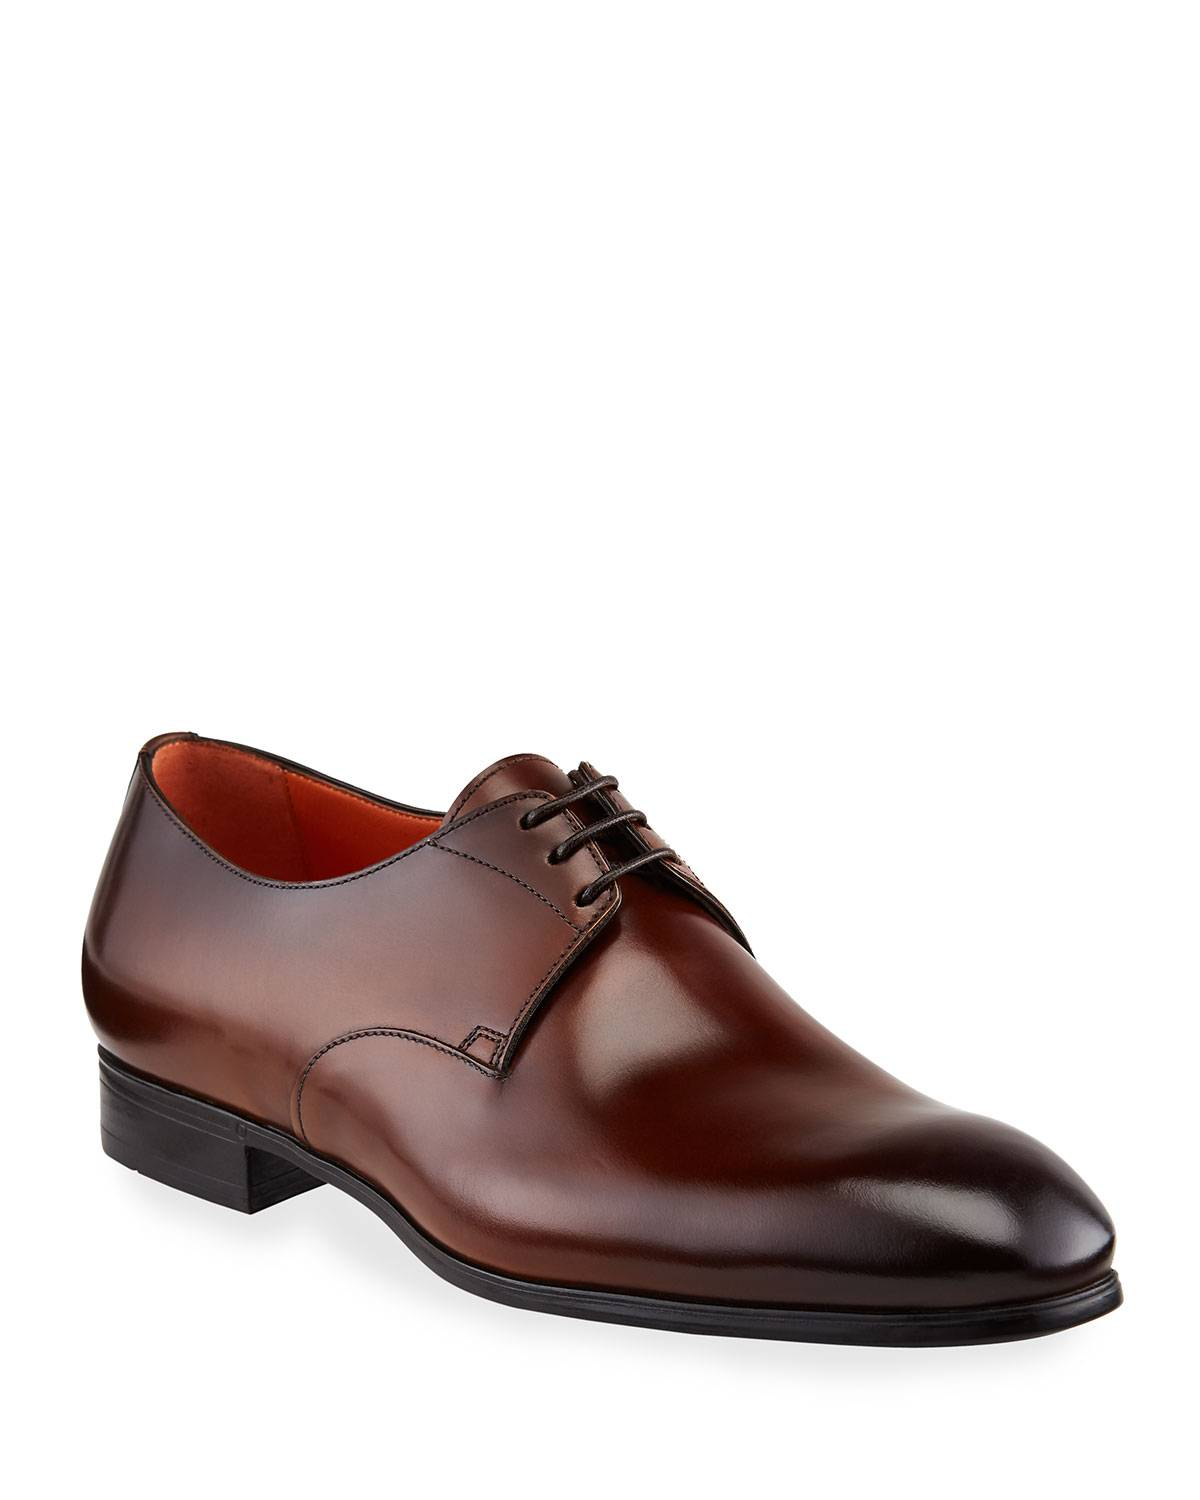 Santoni Men's Induct Burnished Leather Derby Shoes - Size: 11D